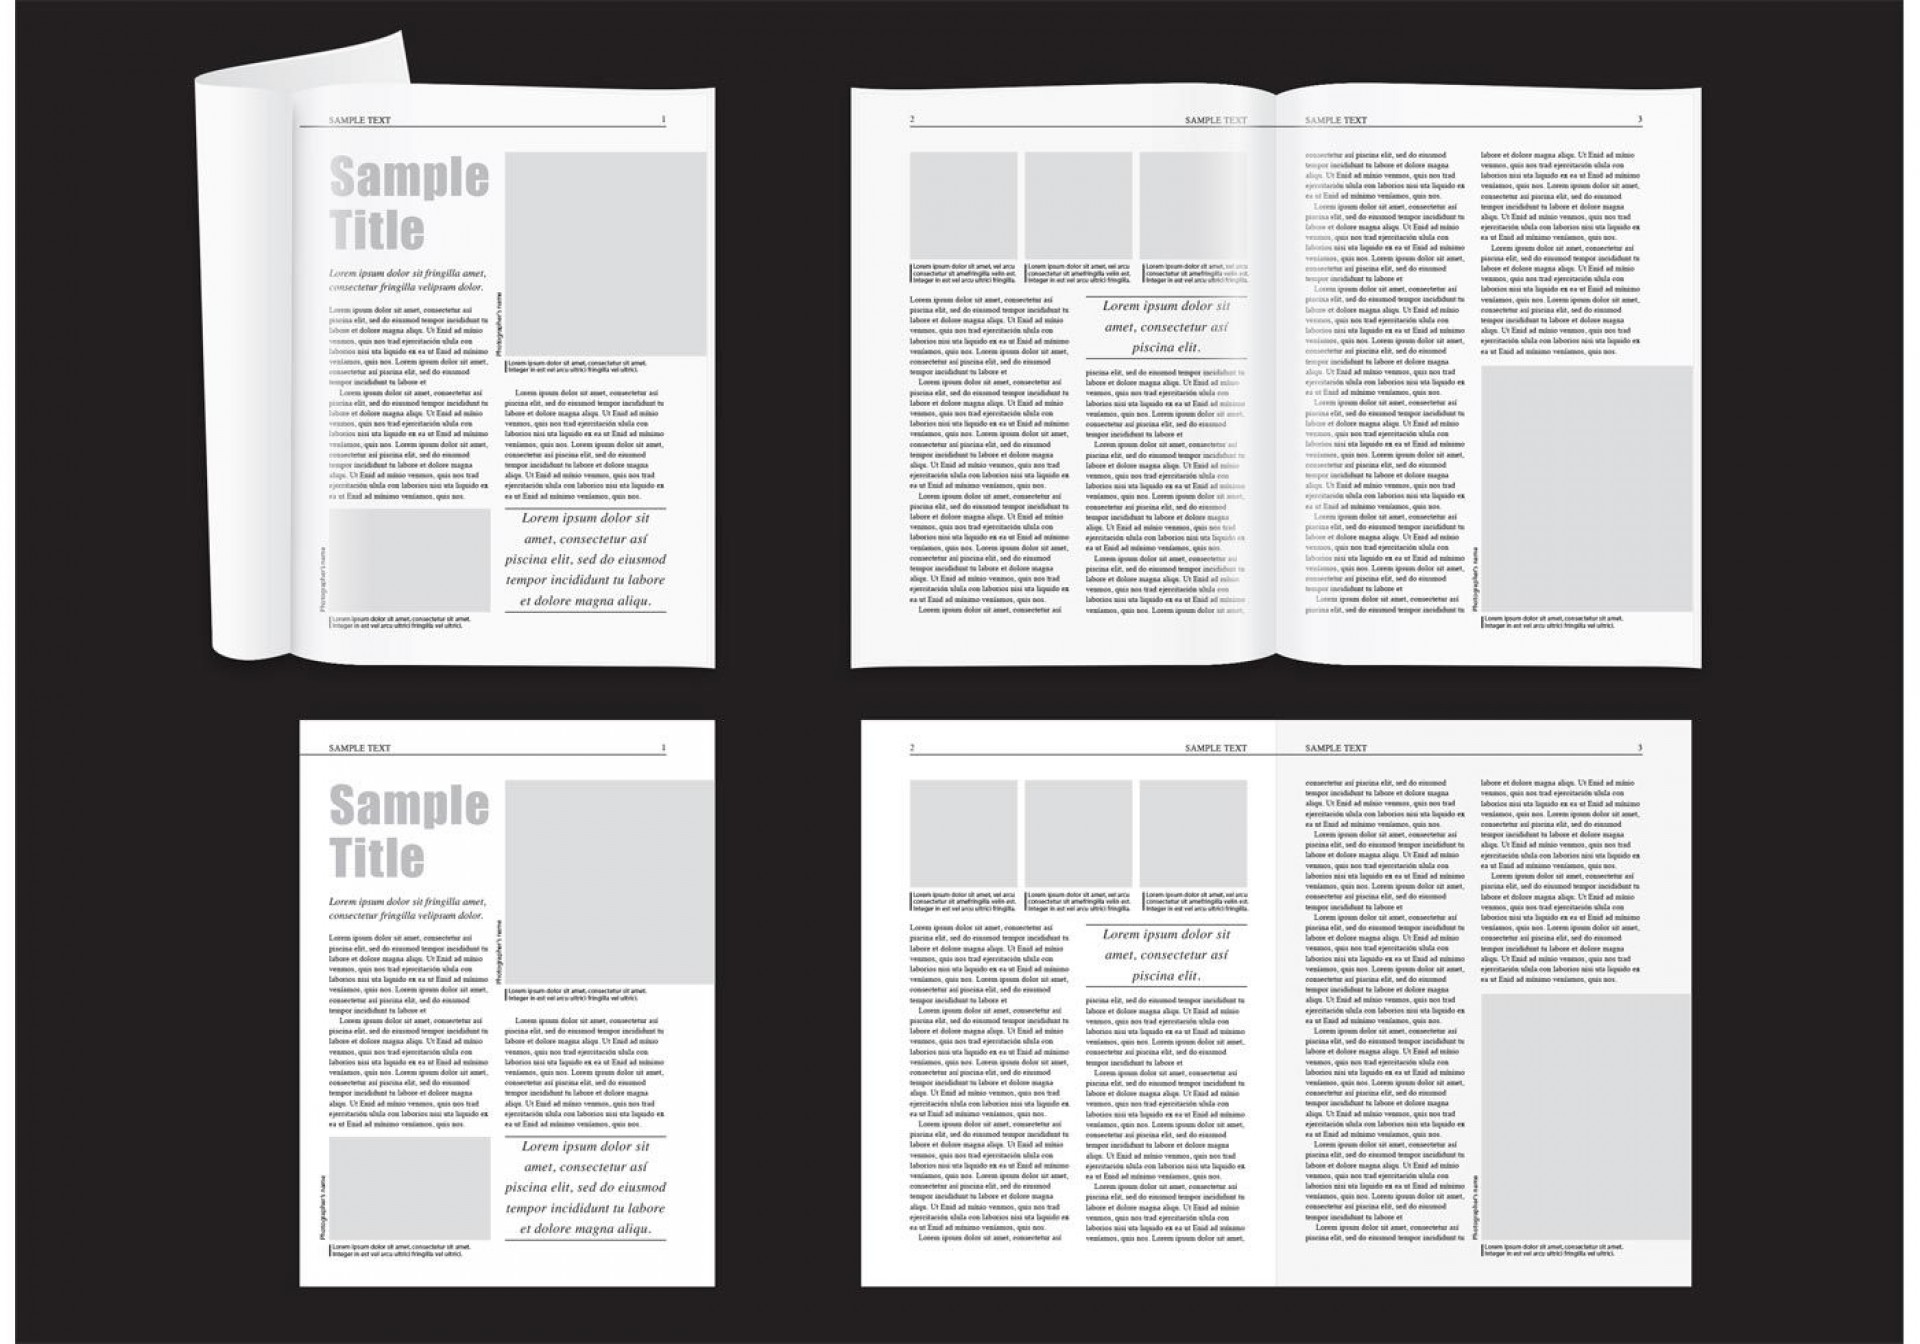 007 Stupendou Magazine Layout Template Free Download Word Concept 1920